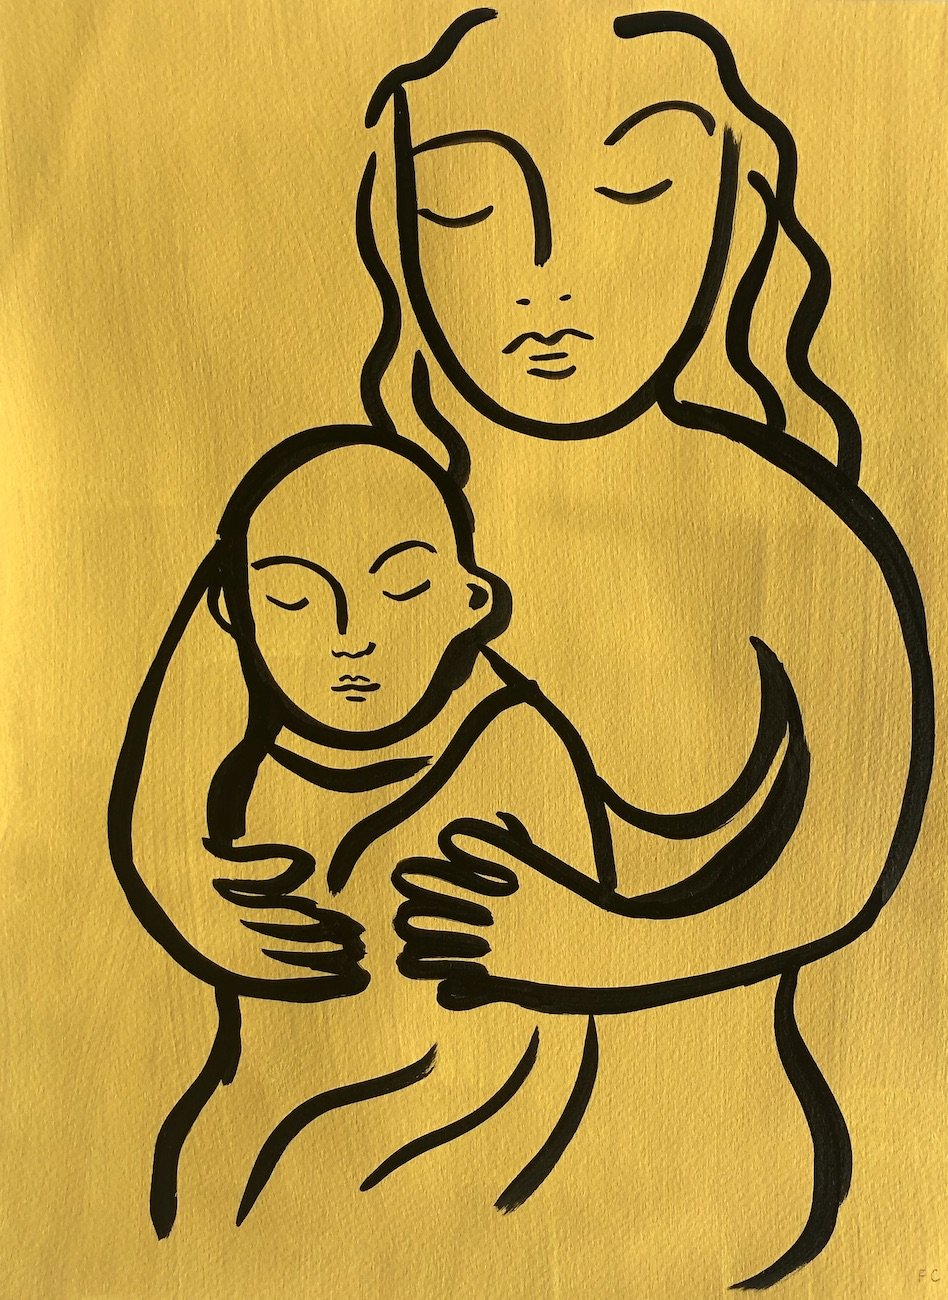 Woman holding baby in yellow | Frances Costelloe | Original Artwork | Partnership Editions